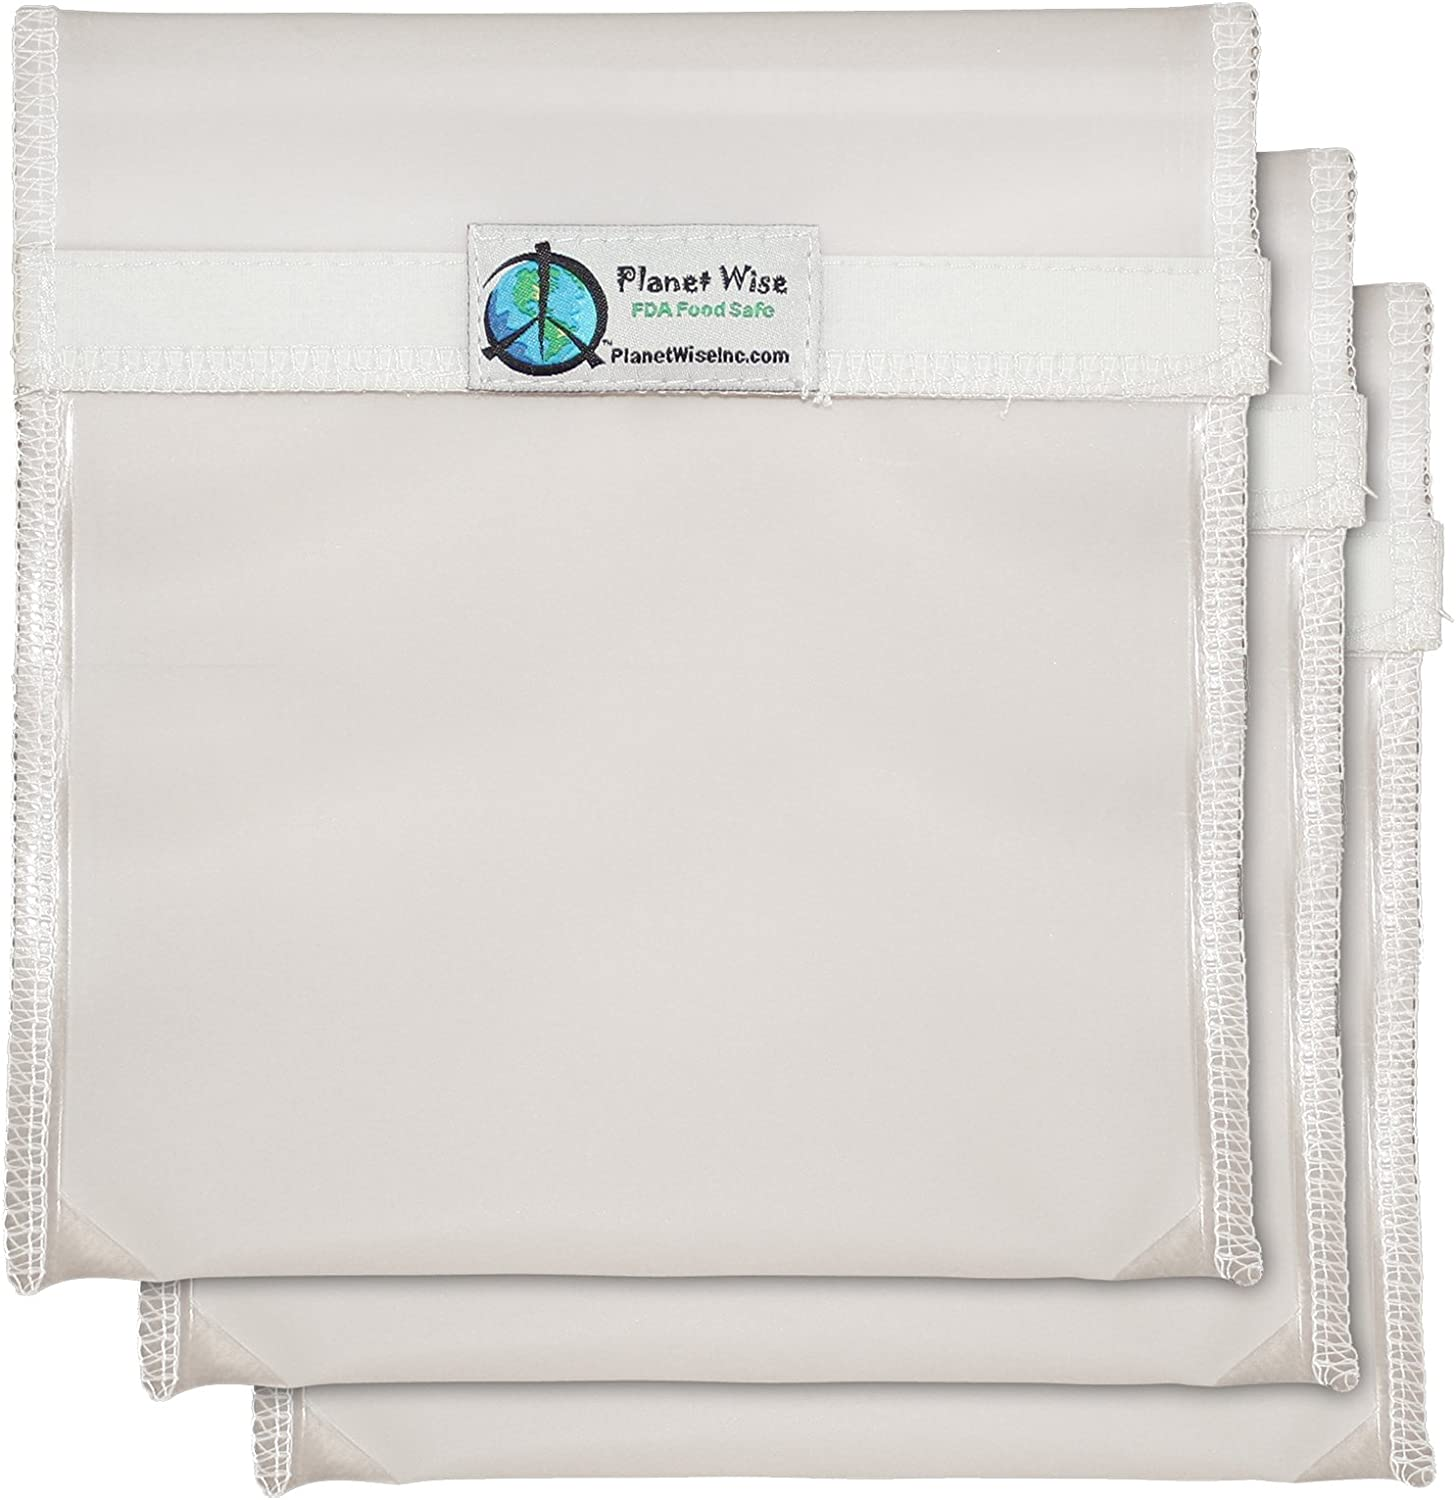 Think Peace Planet Wise Drawstring Sports Bag Made in the USA